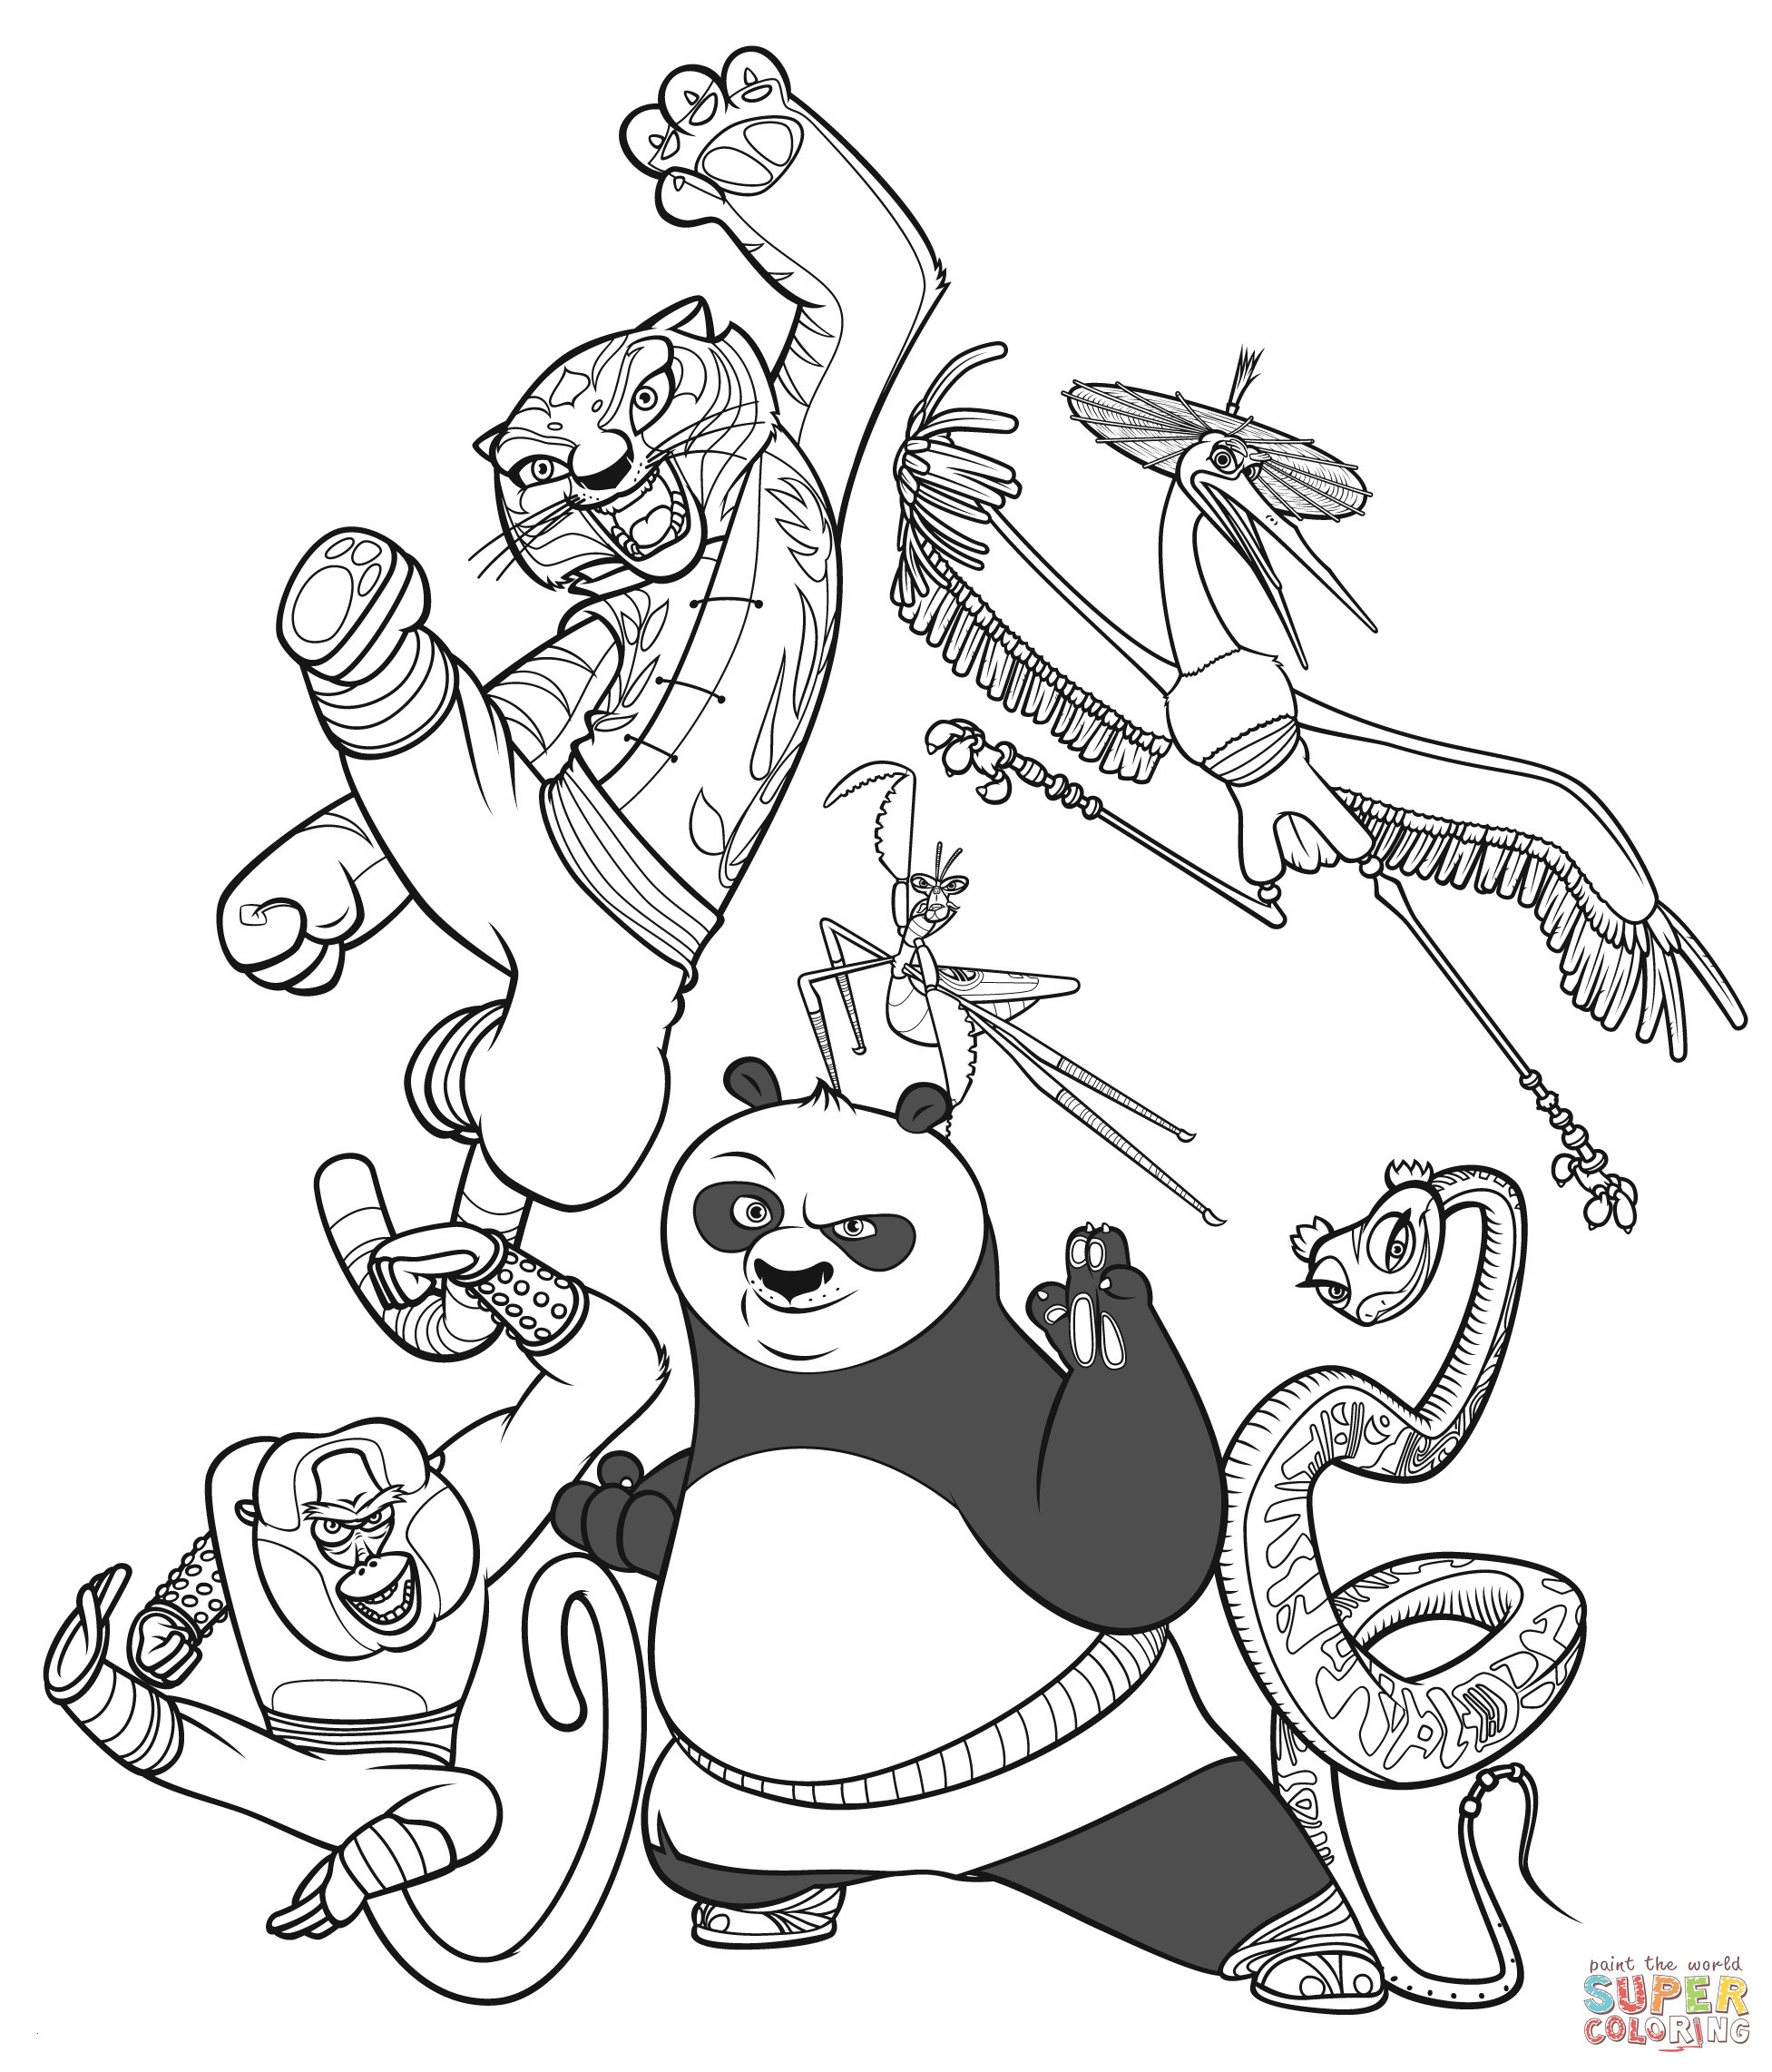 Kung Fu Panda Ausmalbilder Inspirierend 28 Collection Kung Fu Panda Coloring Pages Free Printable Best Fotos